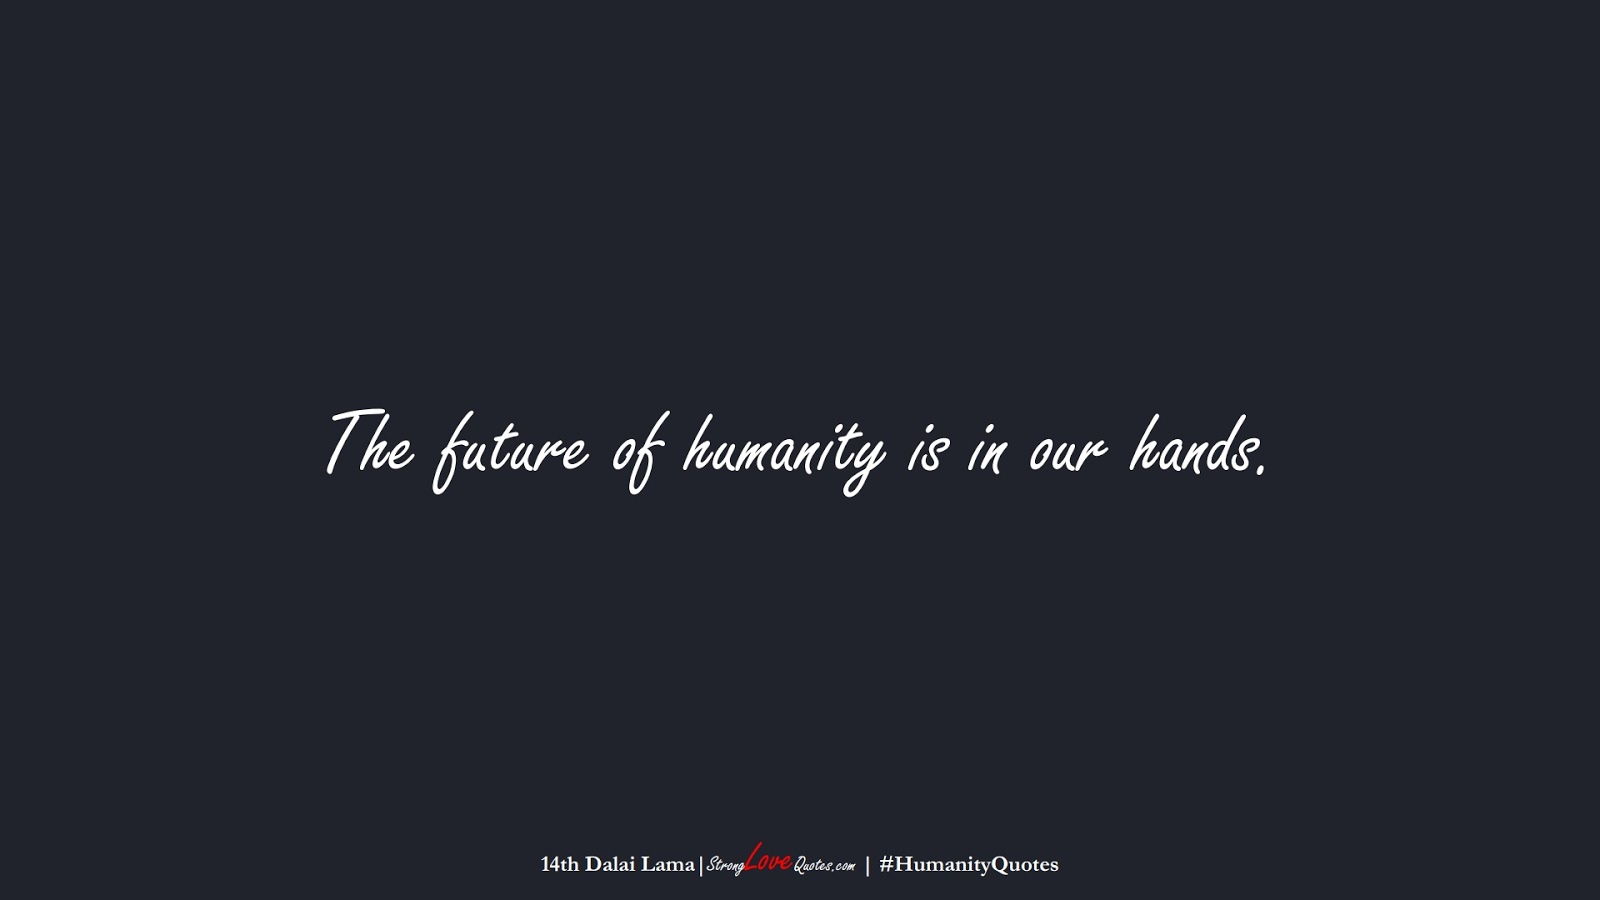 The future of humanity is in our hands. (14th Dalai Lama);  #HumanityQuotes